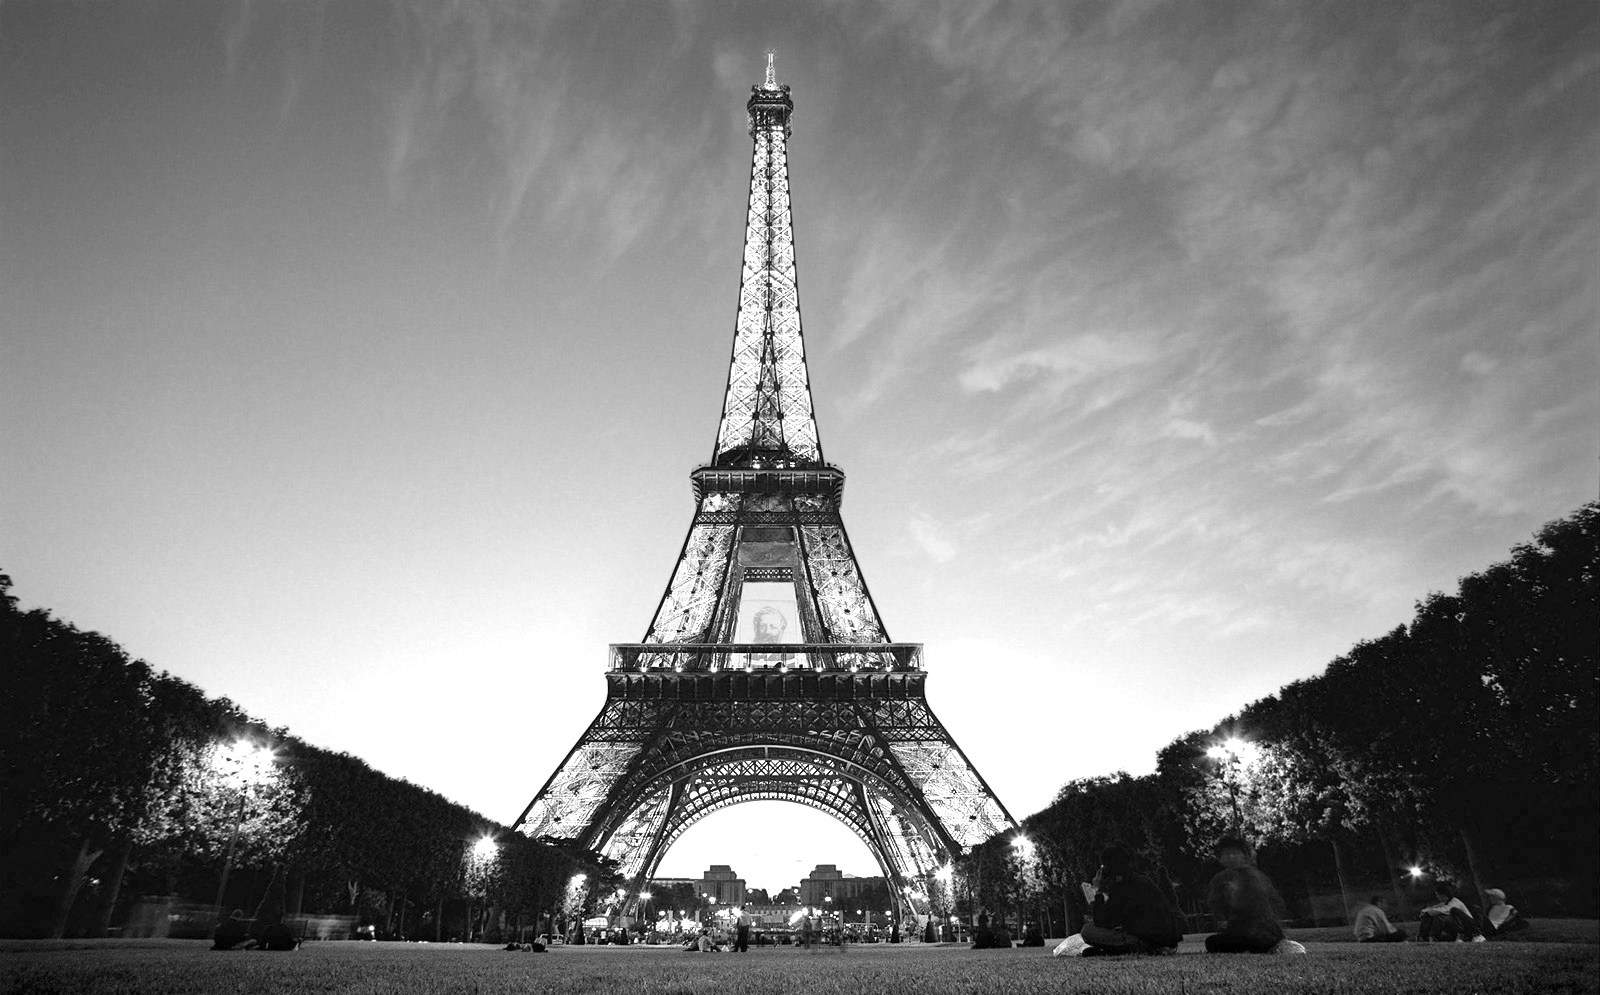 Eiffel Tower Paris Black And White Photos 17 Wtnschpbe